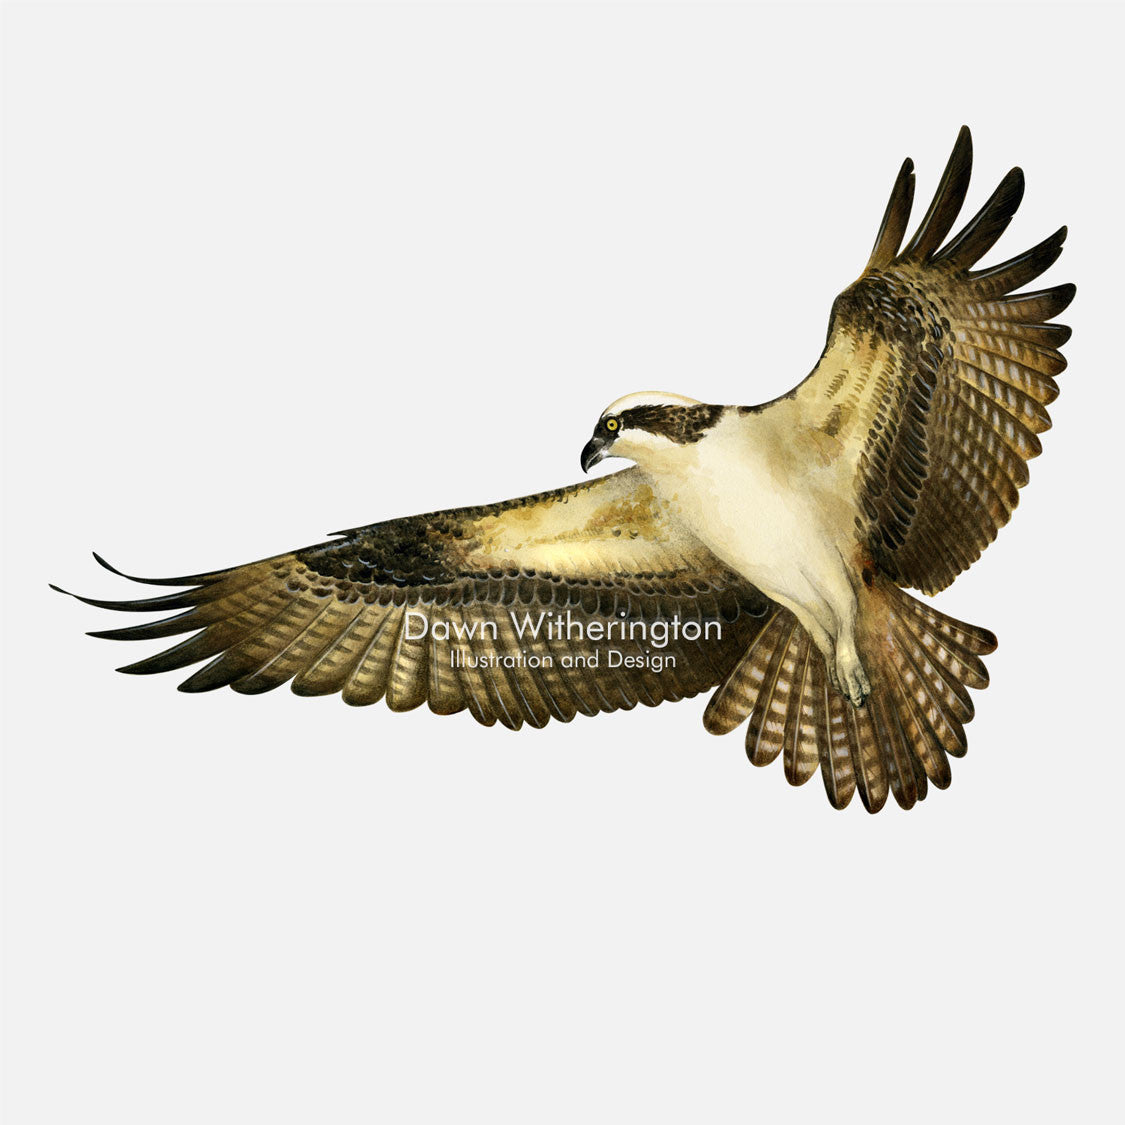 This beautiful illustration of an osprey, Pandion haliaetus, in flight, is biologically accurate in detail.